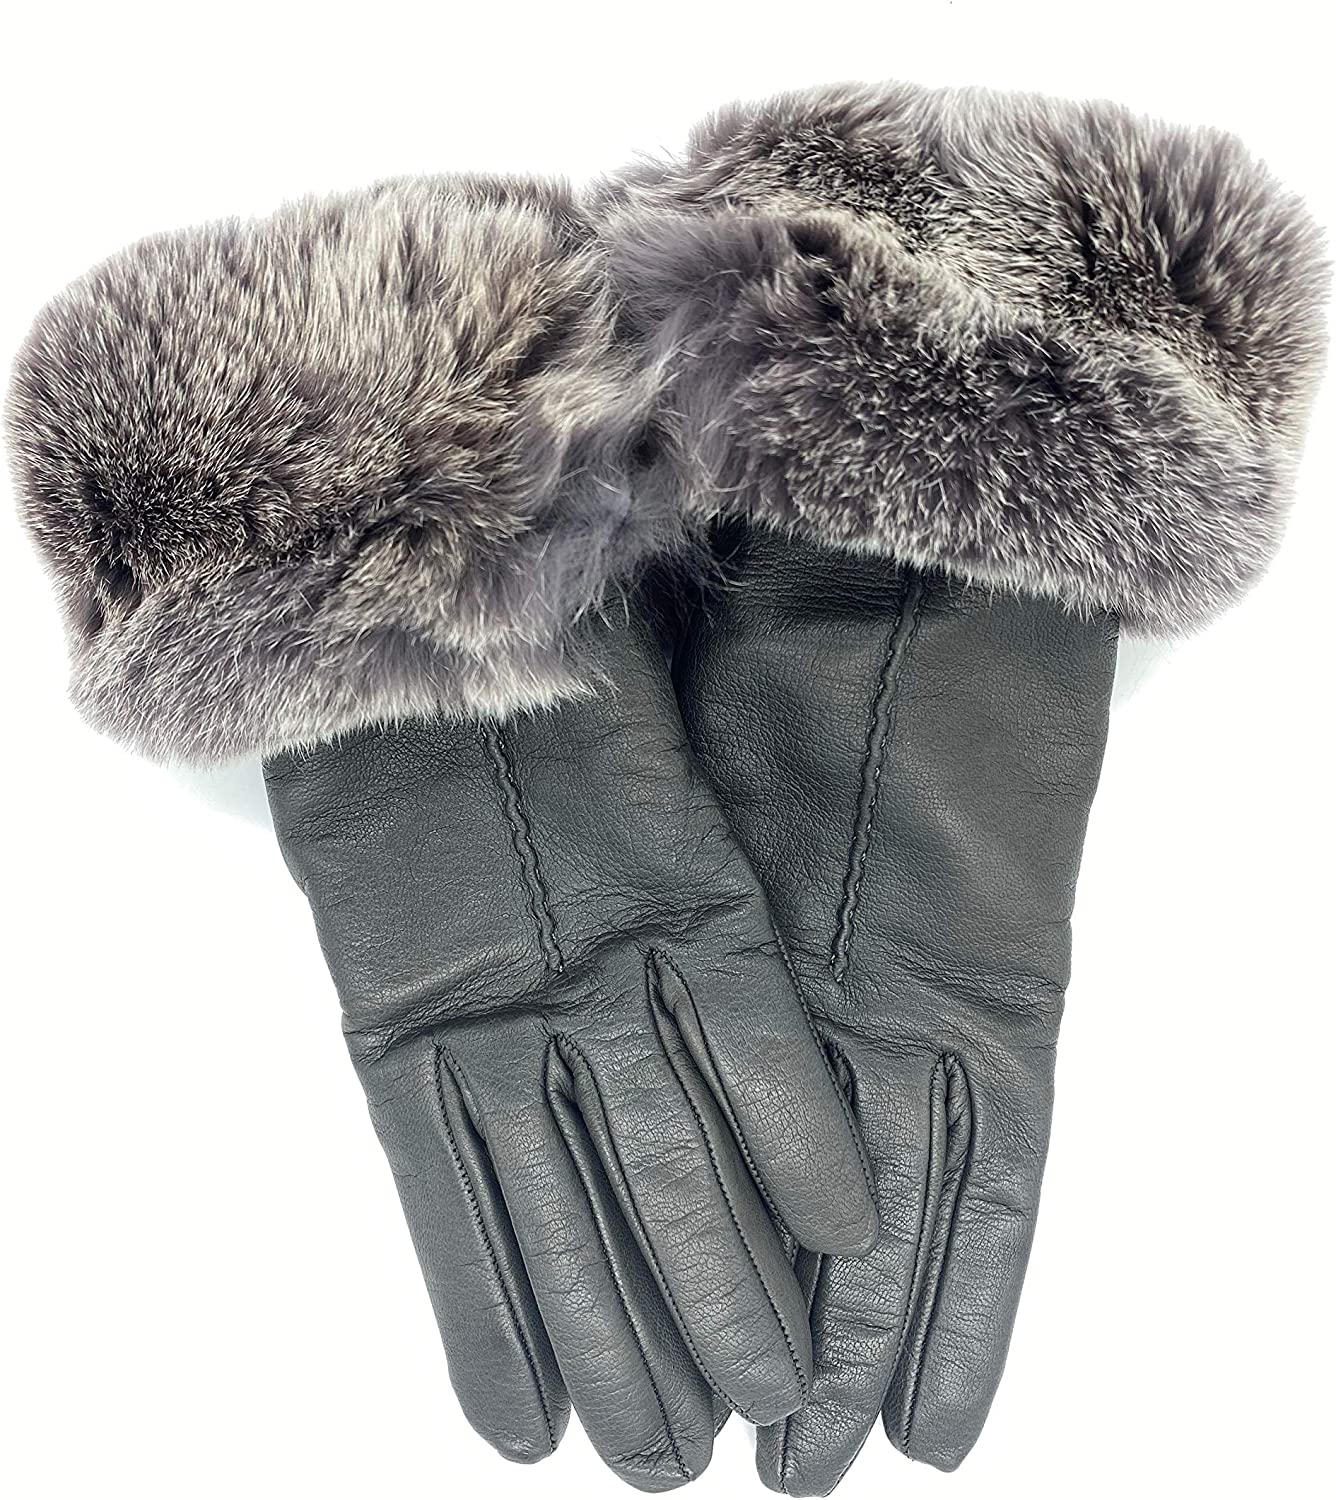 Women's Leather Luxury Gloves Rabbit Fur Made - 最新 Italy Gr 無料サンプルOK Cuff in